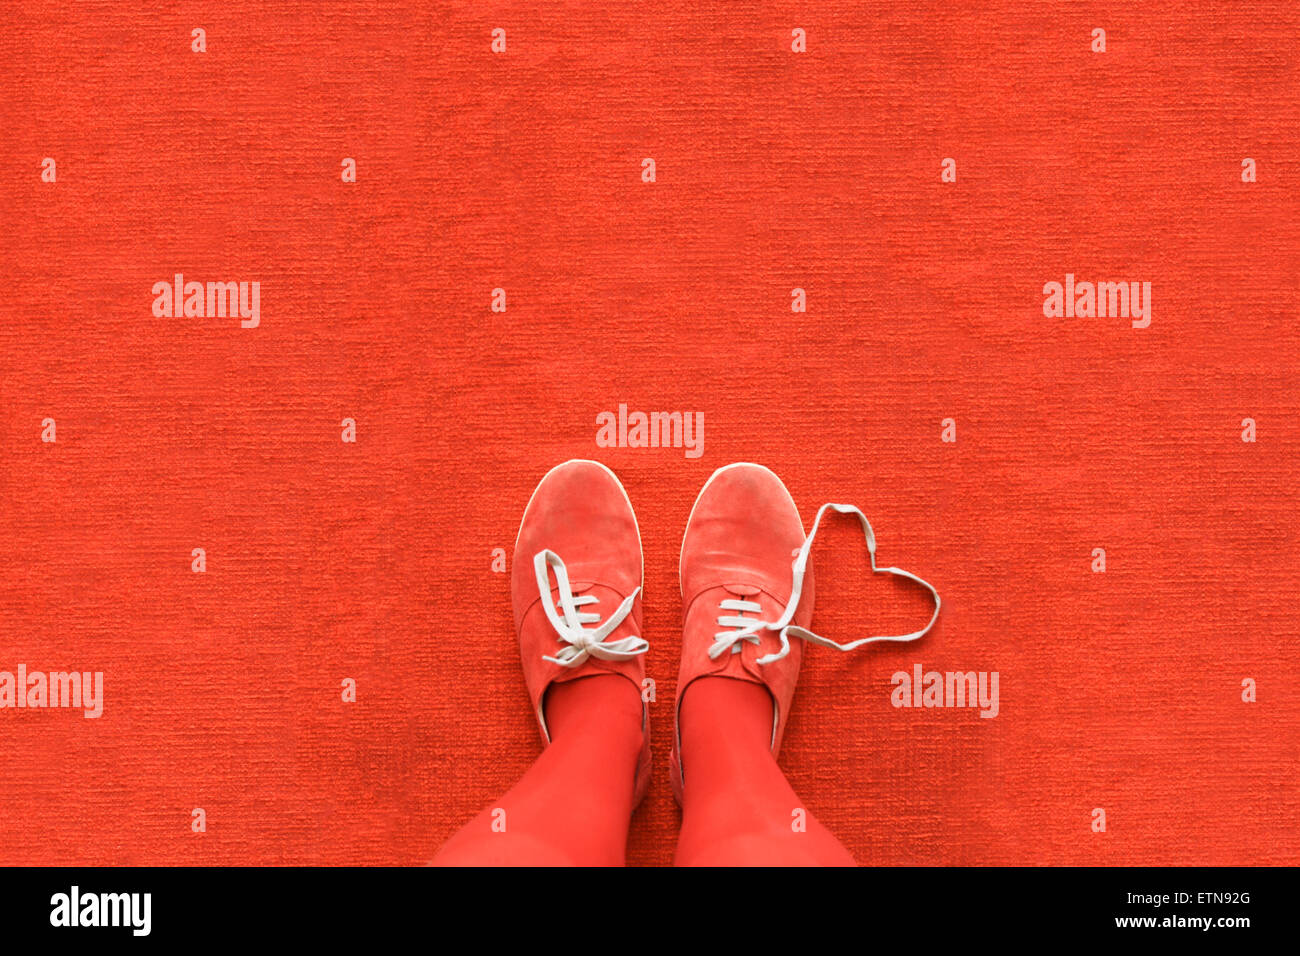 Knees down view of a woman's legs with a heart made out her shoelaces - Stock Image